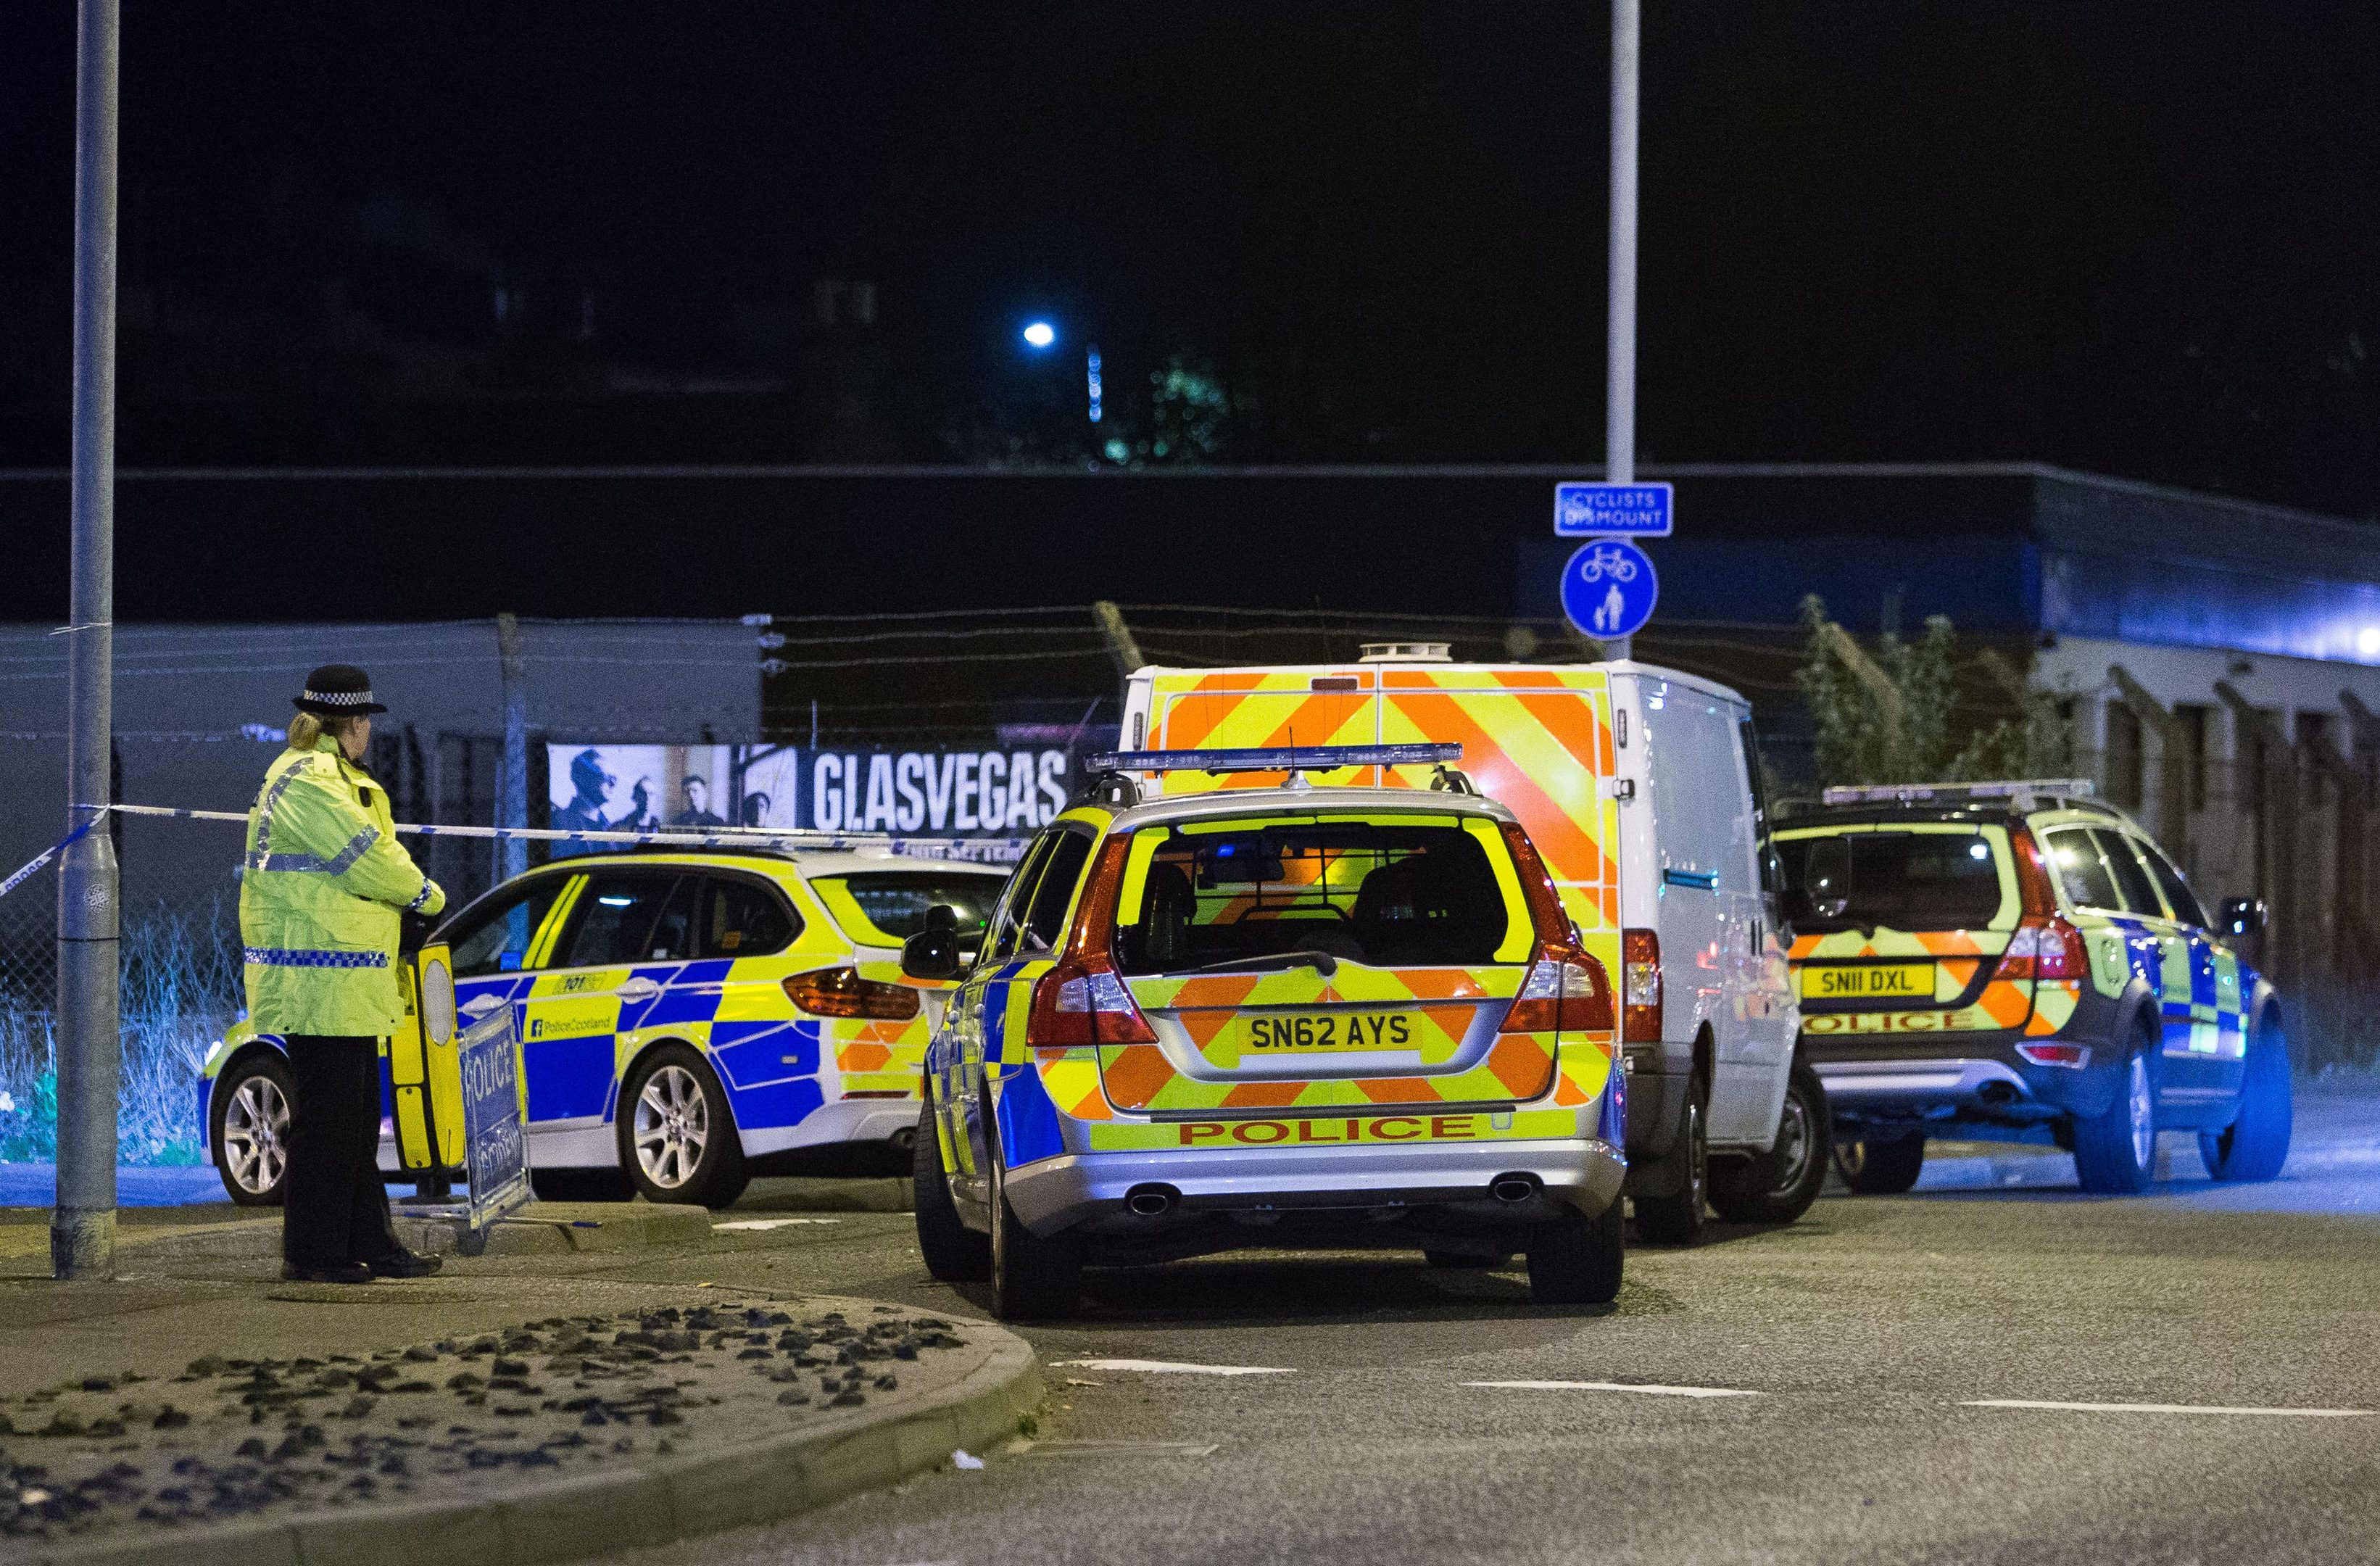 Police vehicles at the scene of the tragedy.